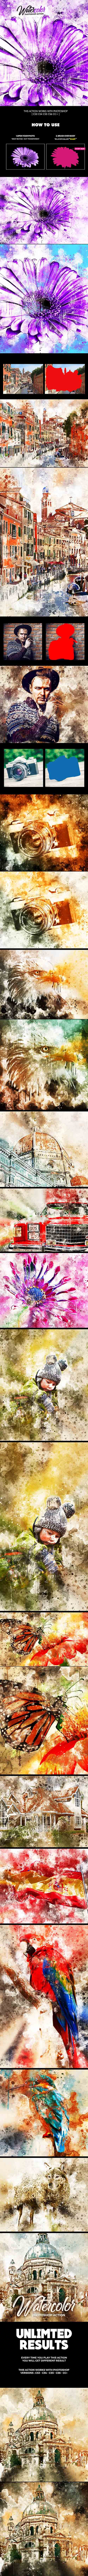 GraphicRiver - Watercolor Photoshop Action 21366119